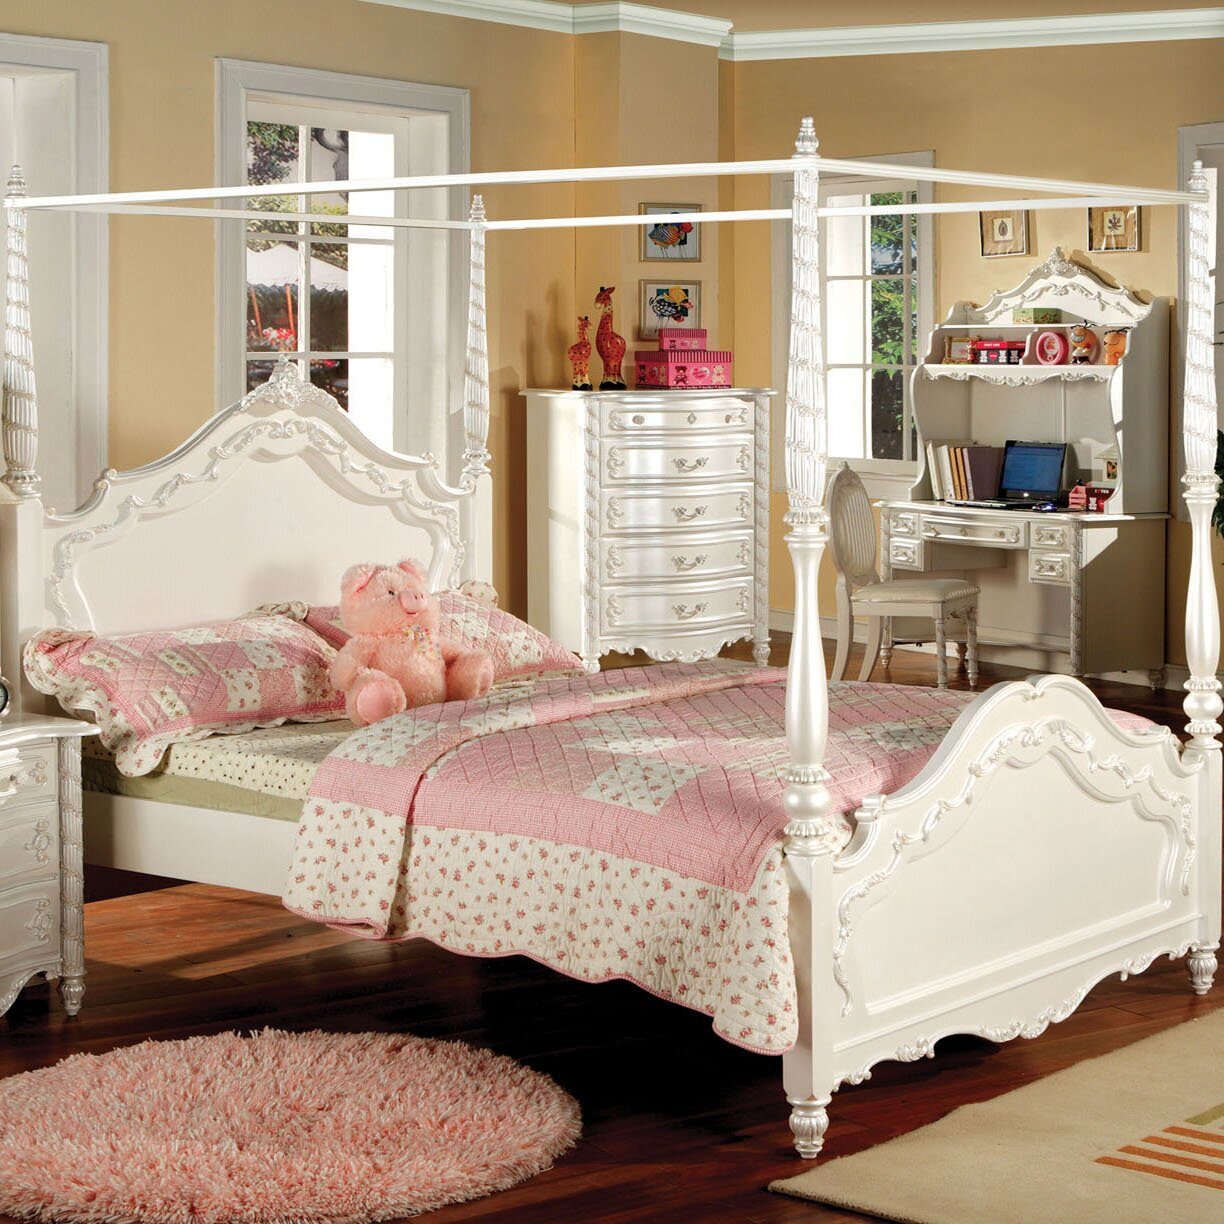 Canopy bed for teenage girls - Ca Canopy Bed For Teenage Girls Darrien Canopy Bed